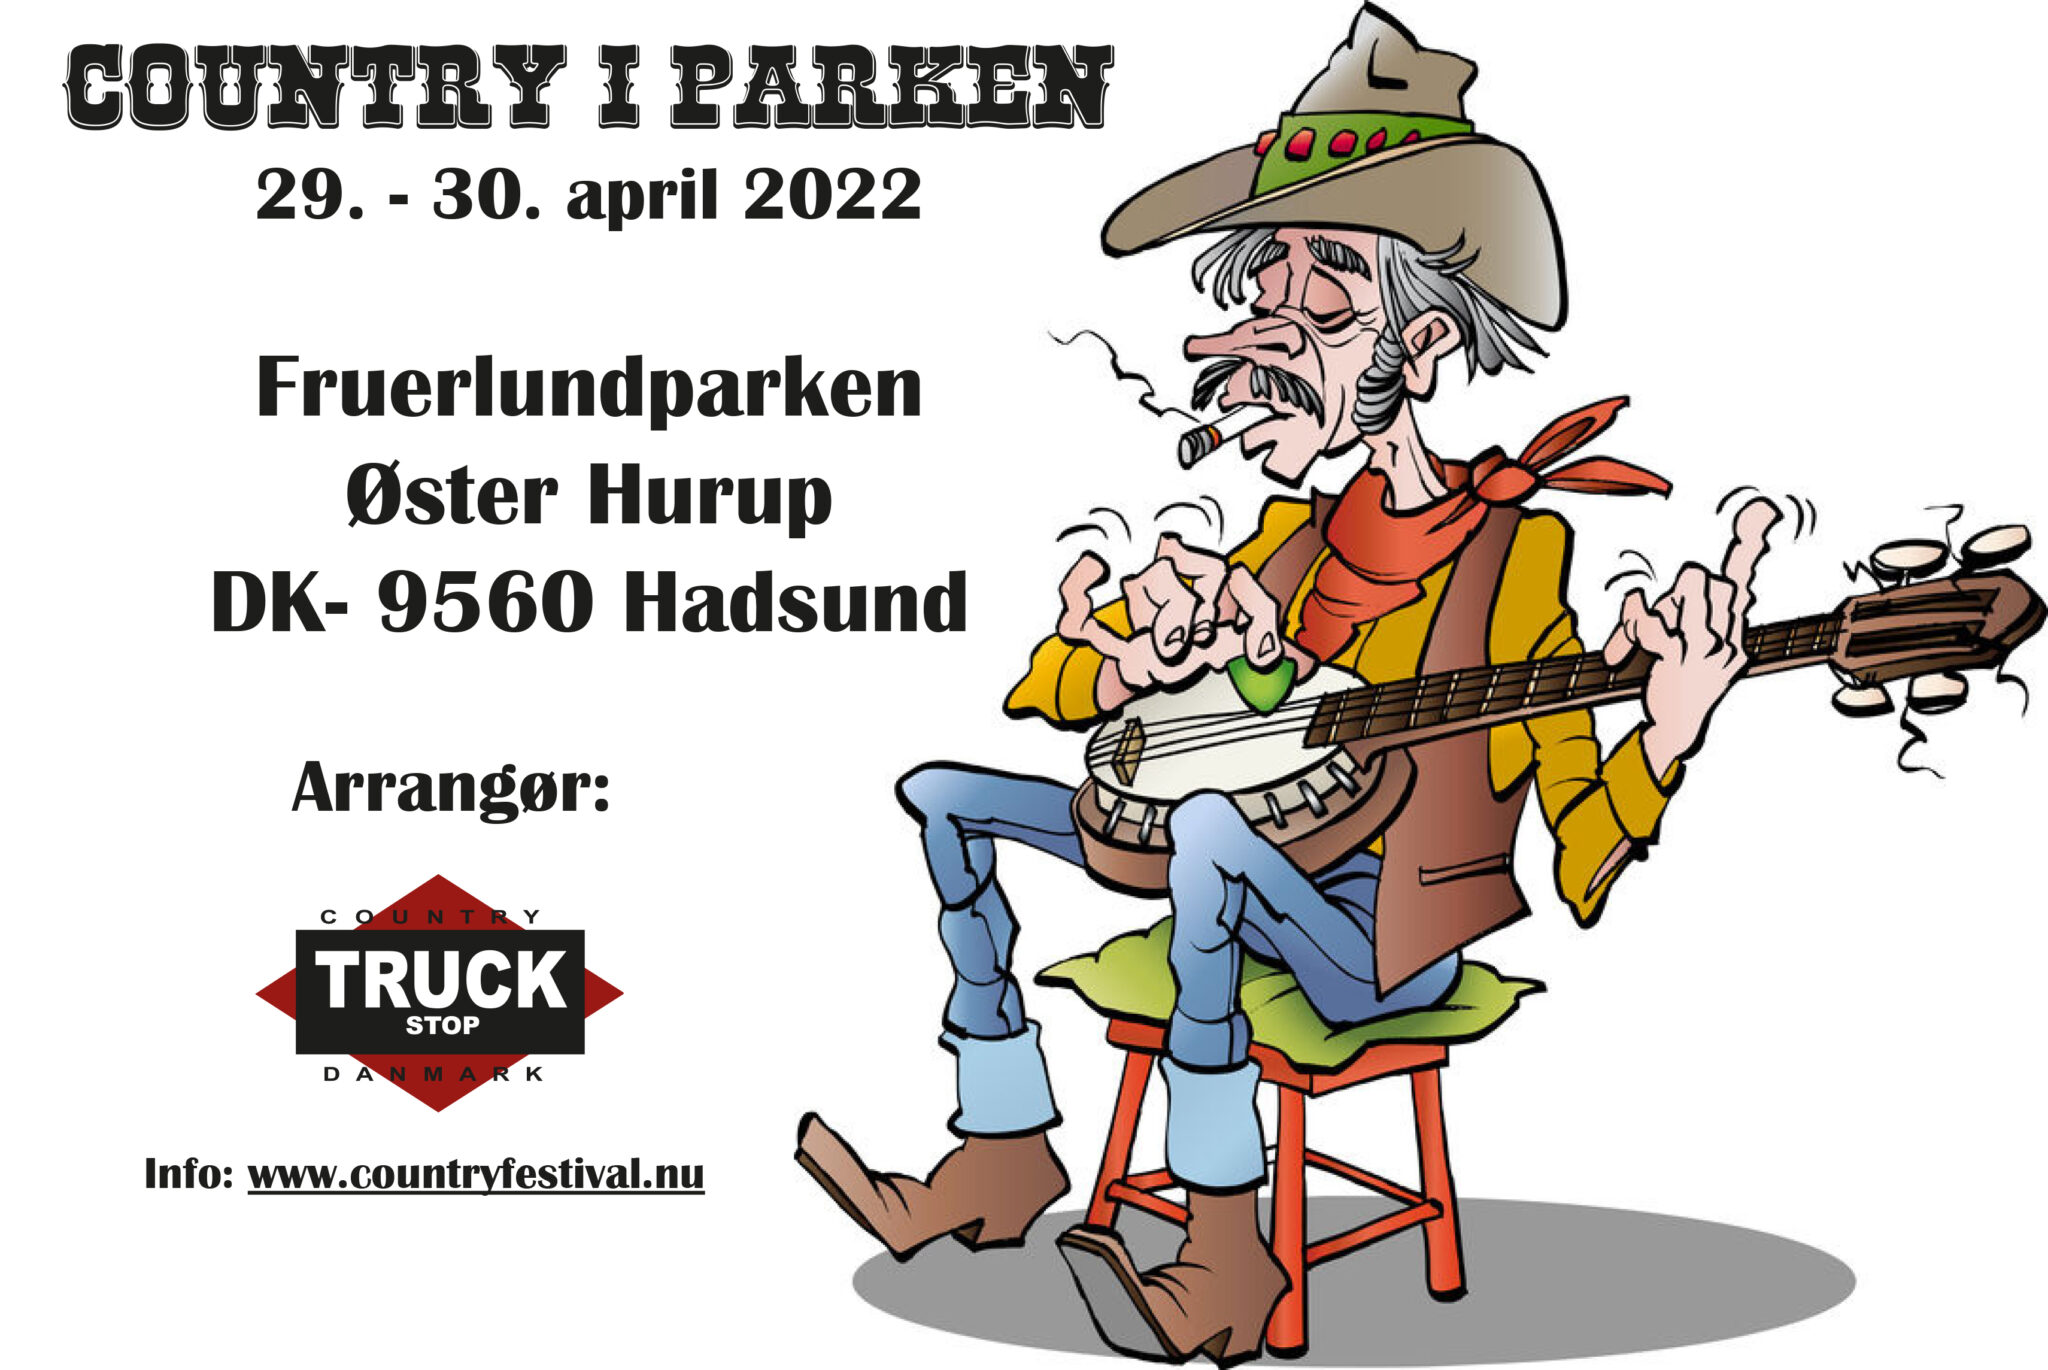 Country i parken